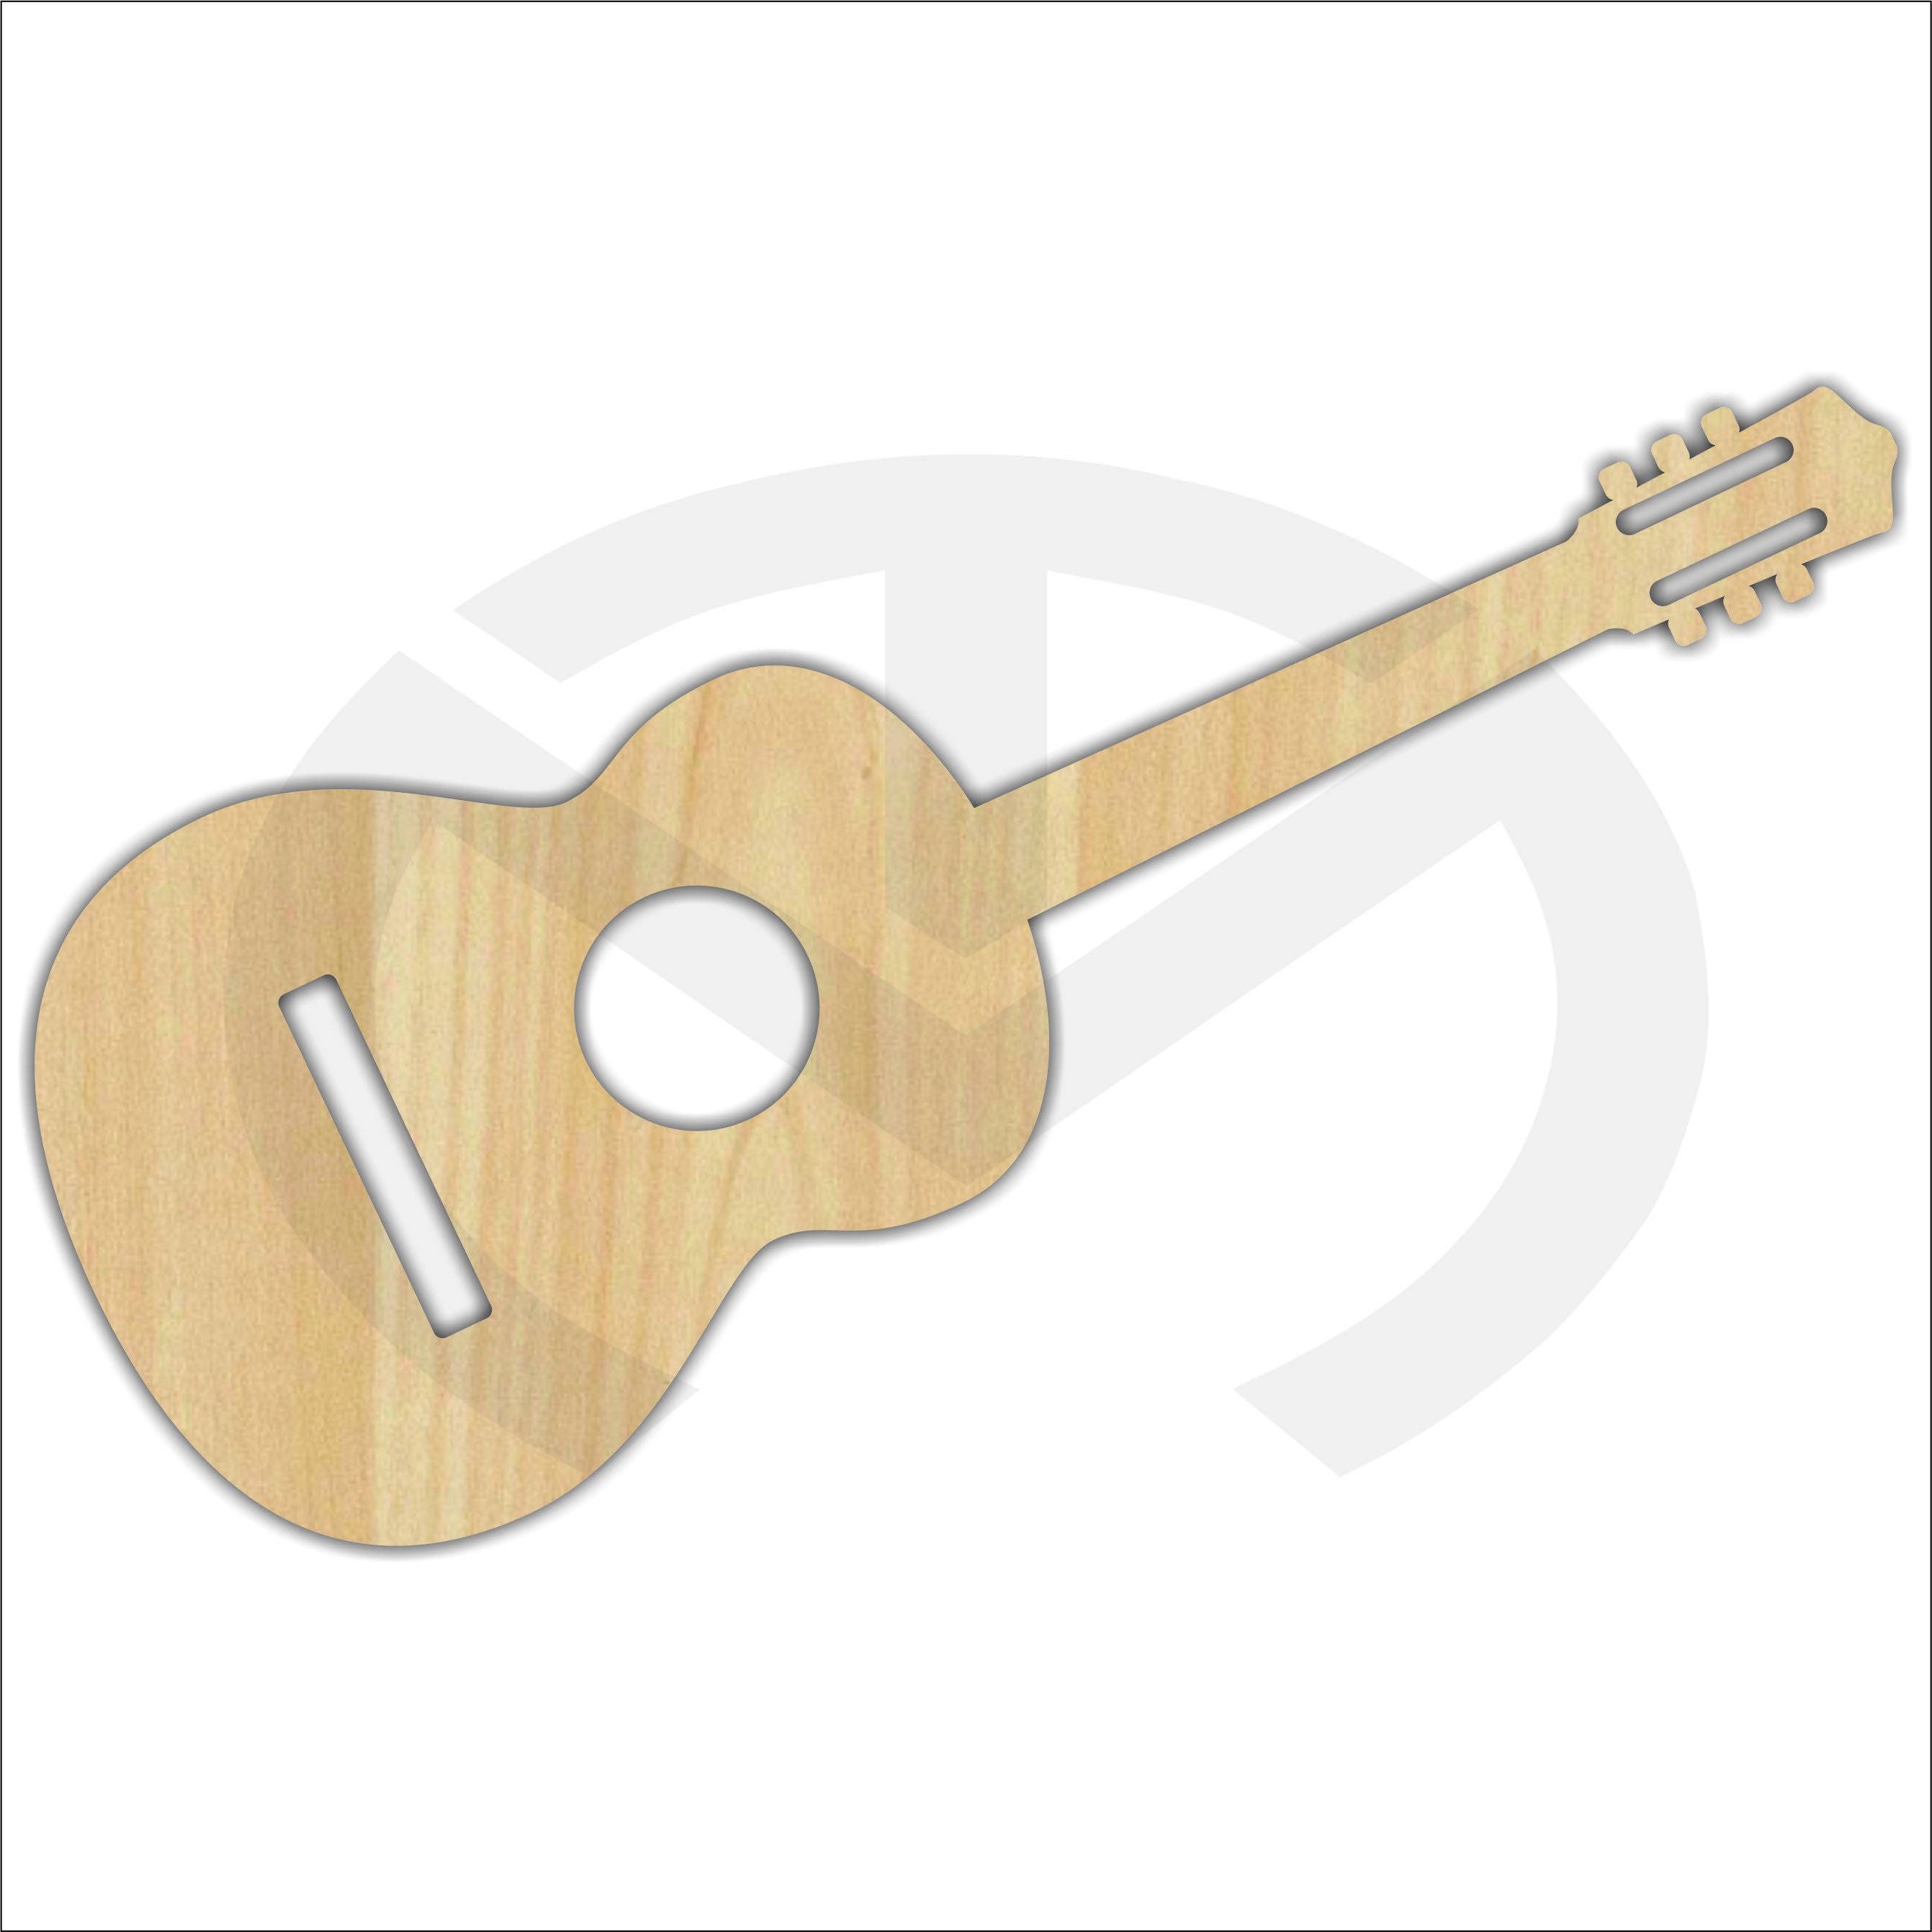 Unfinished Wood Laser Cut Acoustic Guitar Ready to Paint